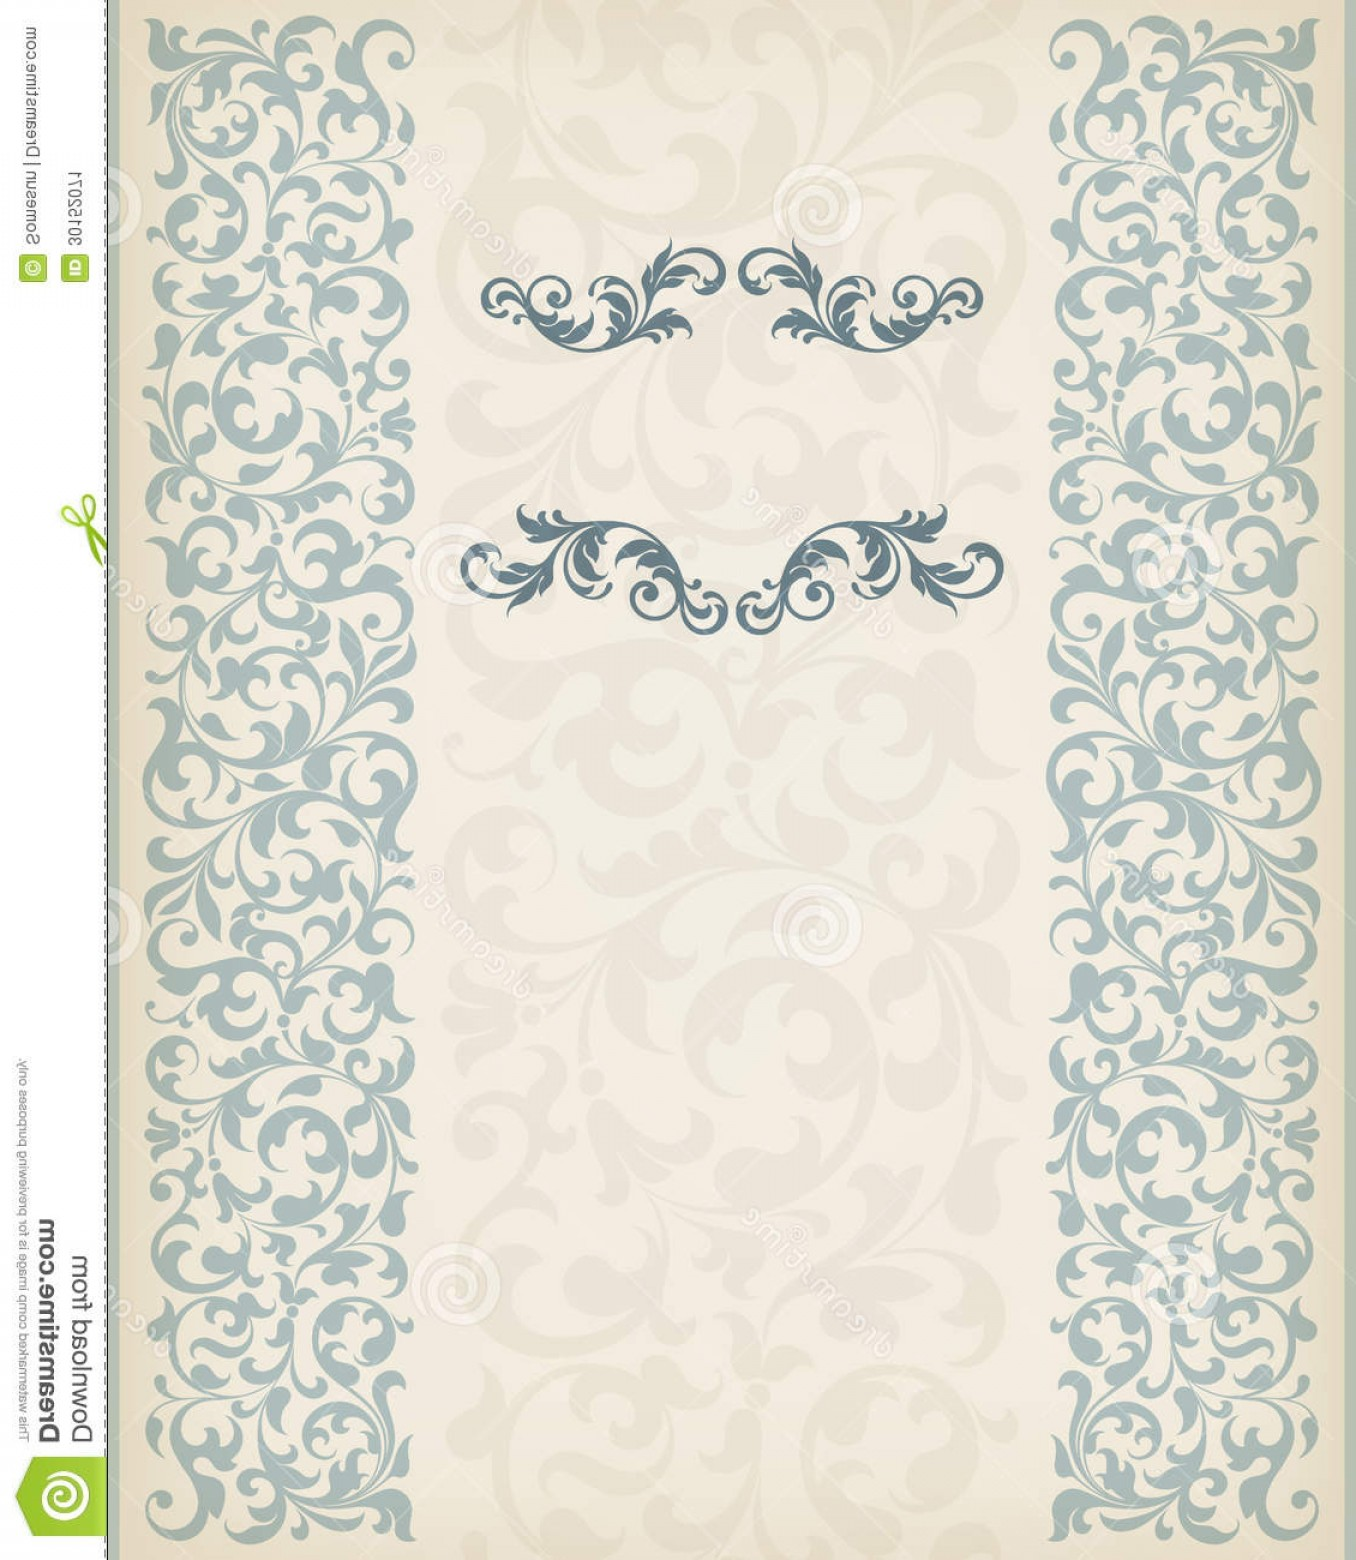 Vector Ornate Vintage Frame Blank: Stock Image Vector Vintage Ornate Border Frame Filigree Retro Ornament Pattern Antique Baroque Style Arabic Decorative Wedding Image